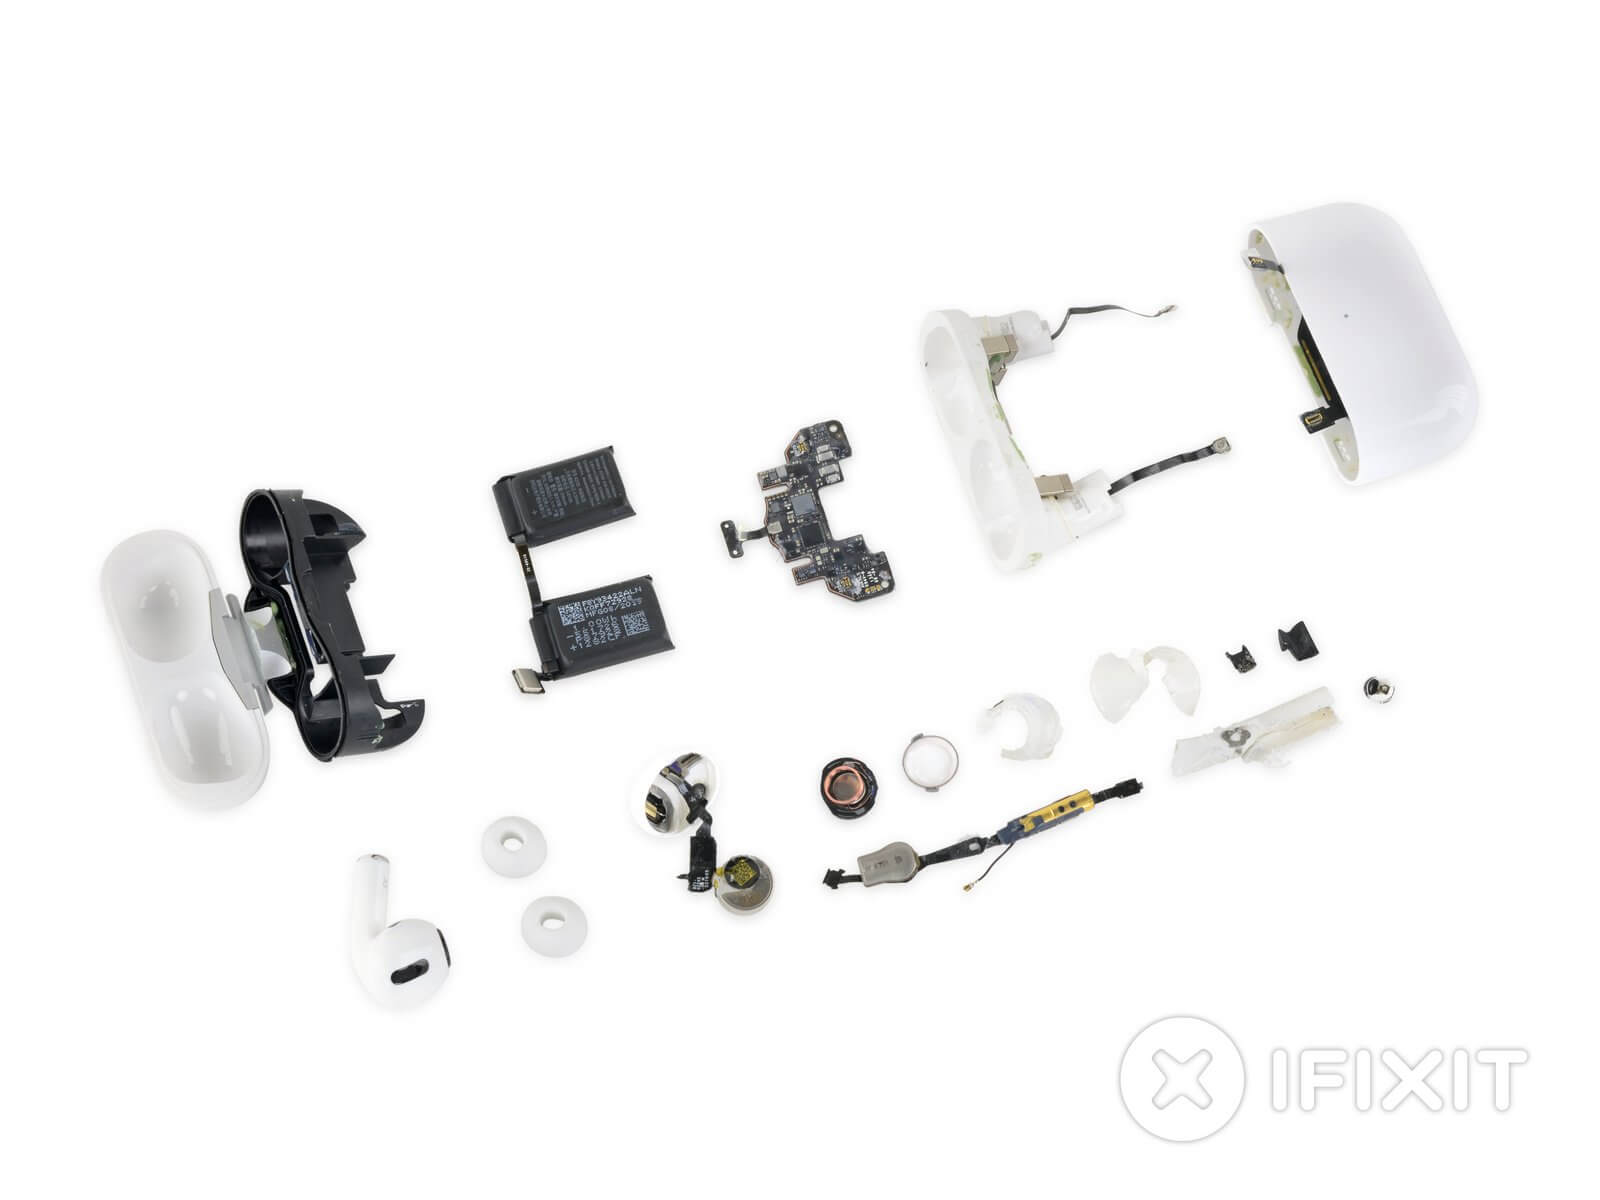 AirPods Pro iFixit